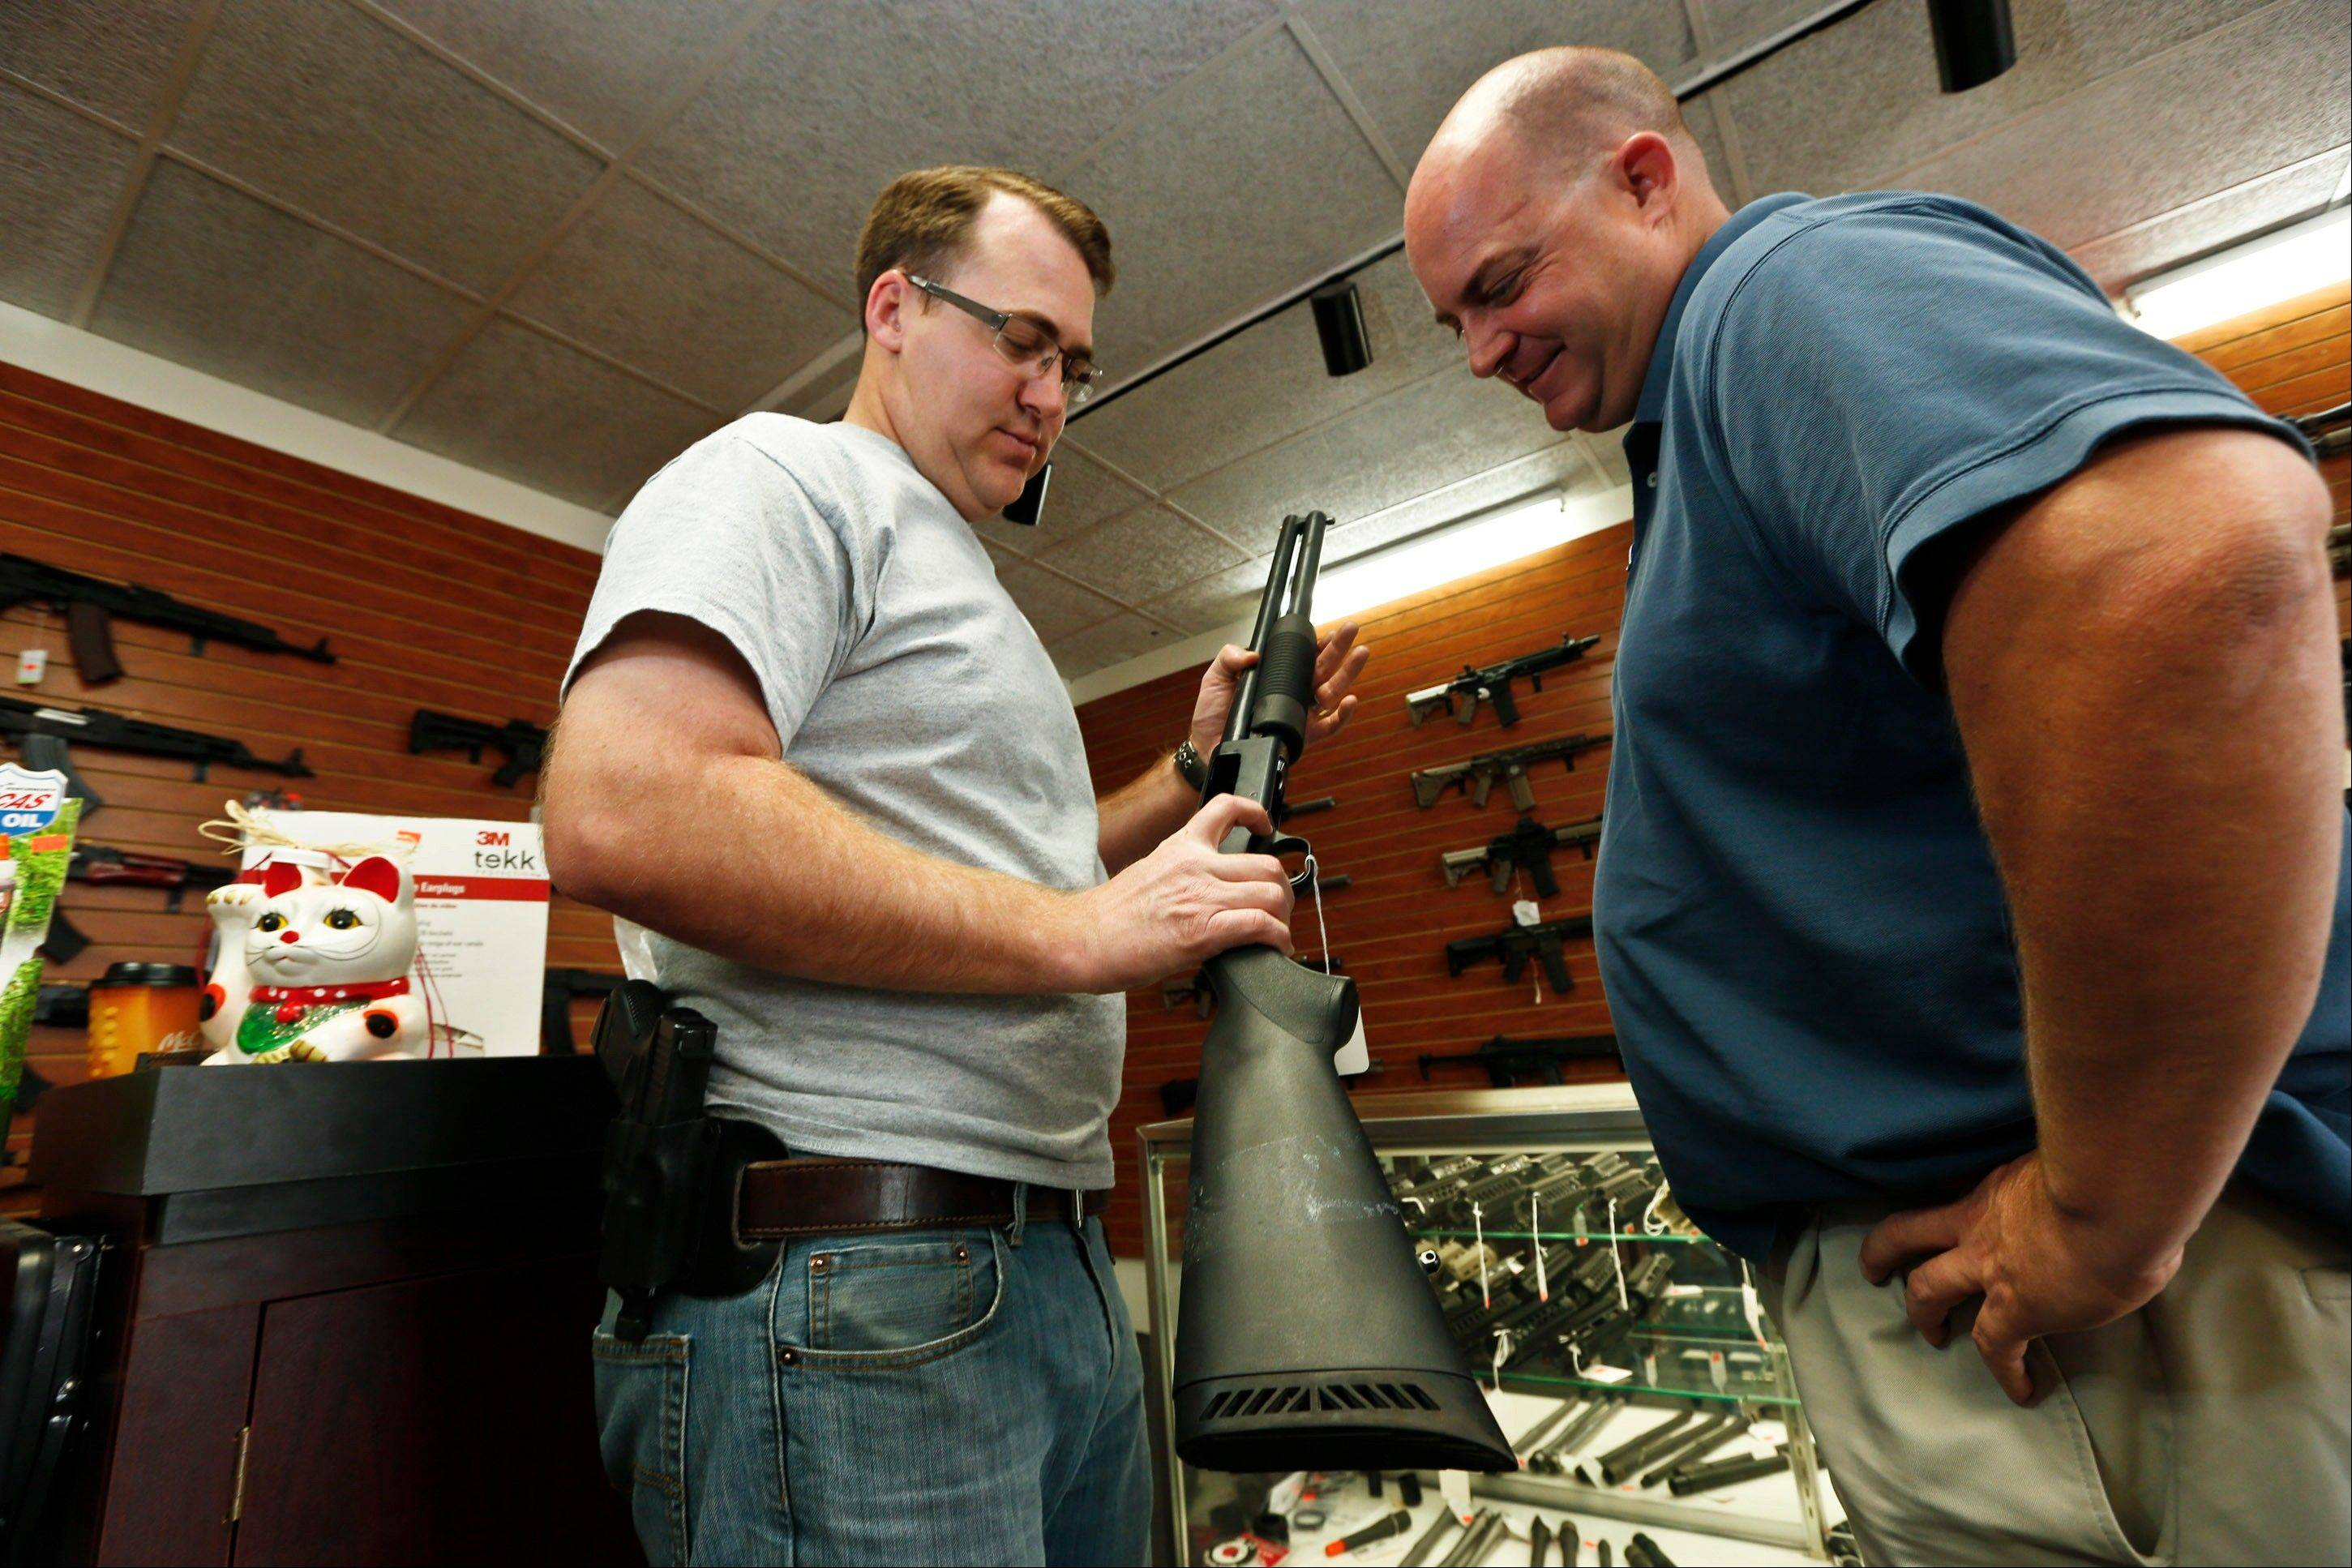 Black Weapons Armory store owner Tommy Rompel, left, shows former mayoral candidate Shaun McClusky, a shotgun Thursday at the Tucson, Ariz., store. The weapon is similar to those to be given away as part of a privately funded program he is launching to provide residents in crime-prone areas with free shotguns.